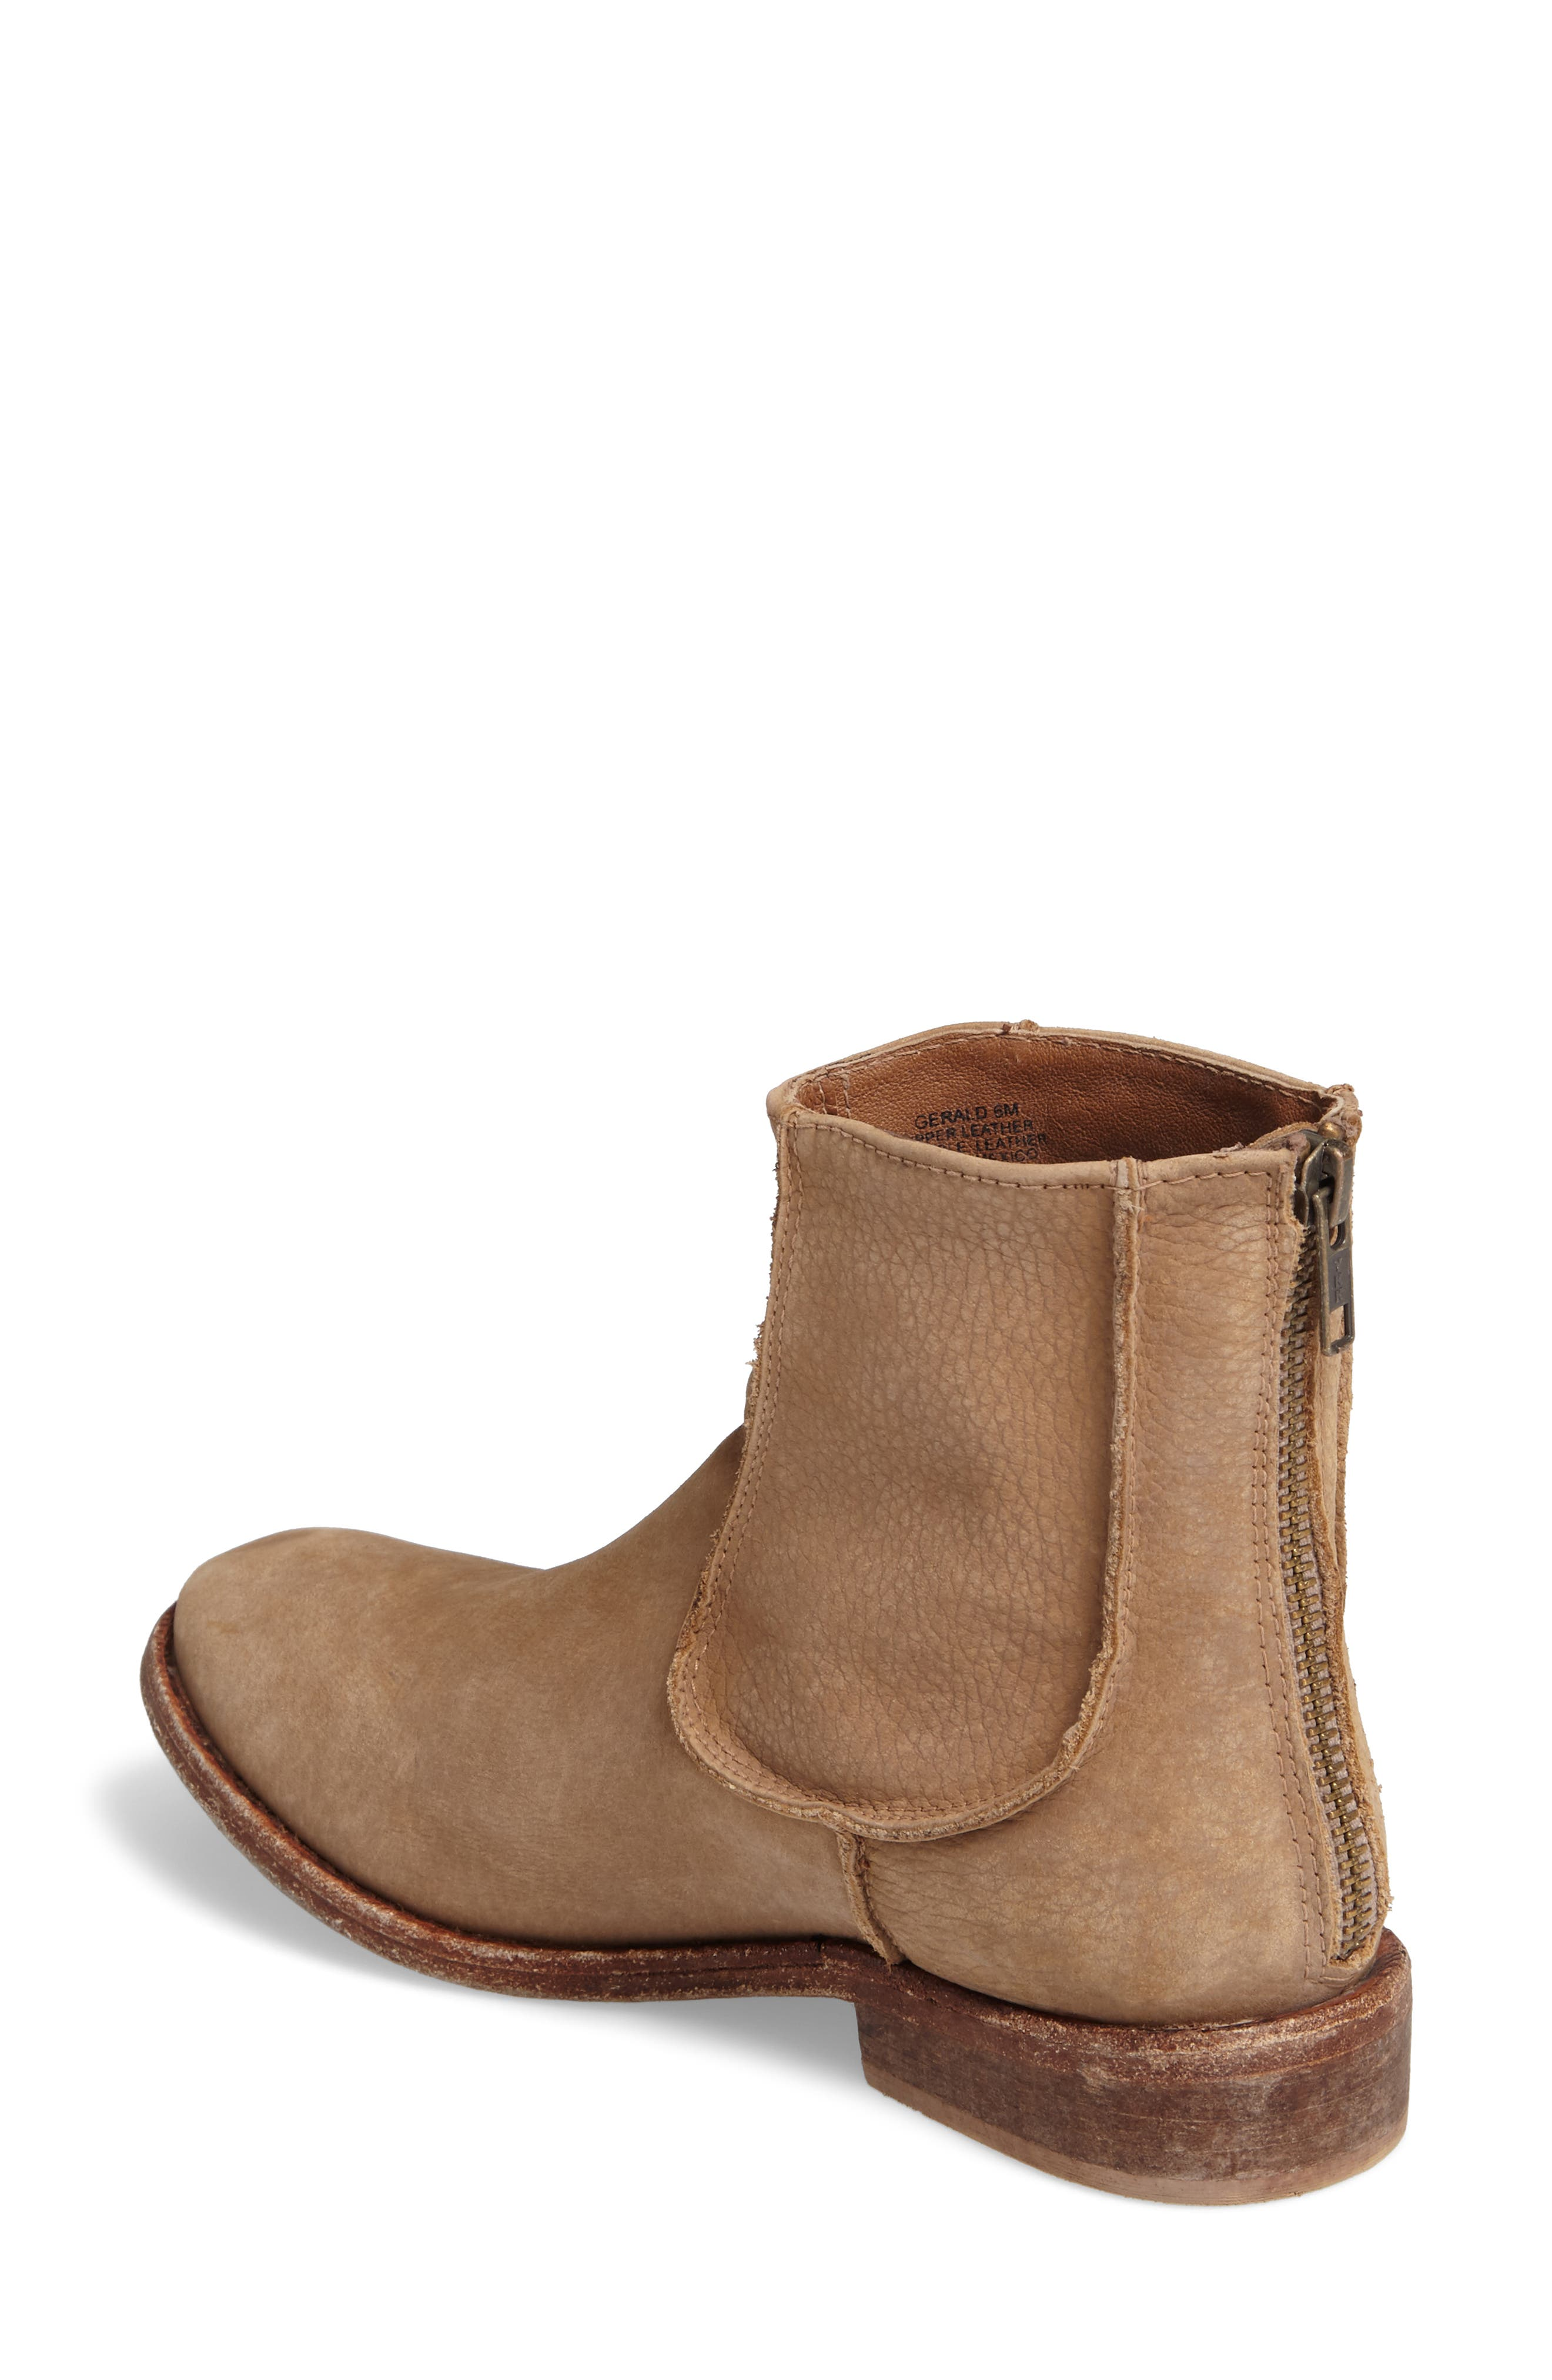 'Gerald' Distressed Bootie,                             Alternate thumbnail 6, color,